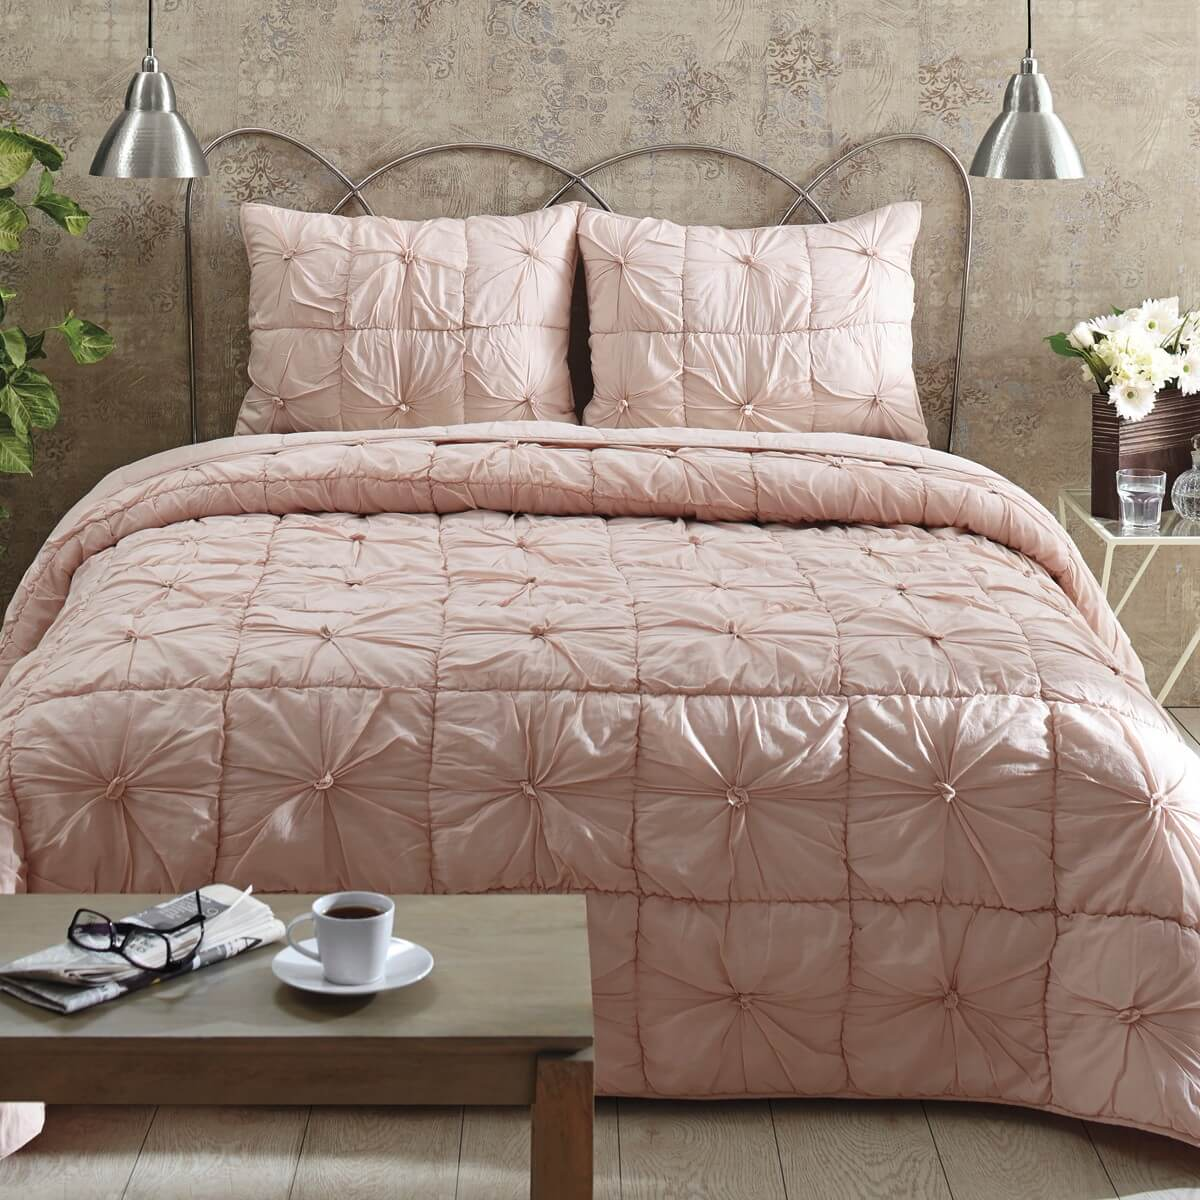 Quilt Sets Camille Blush Pink King Quilt Set